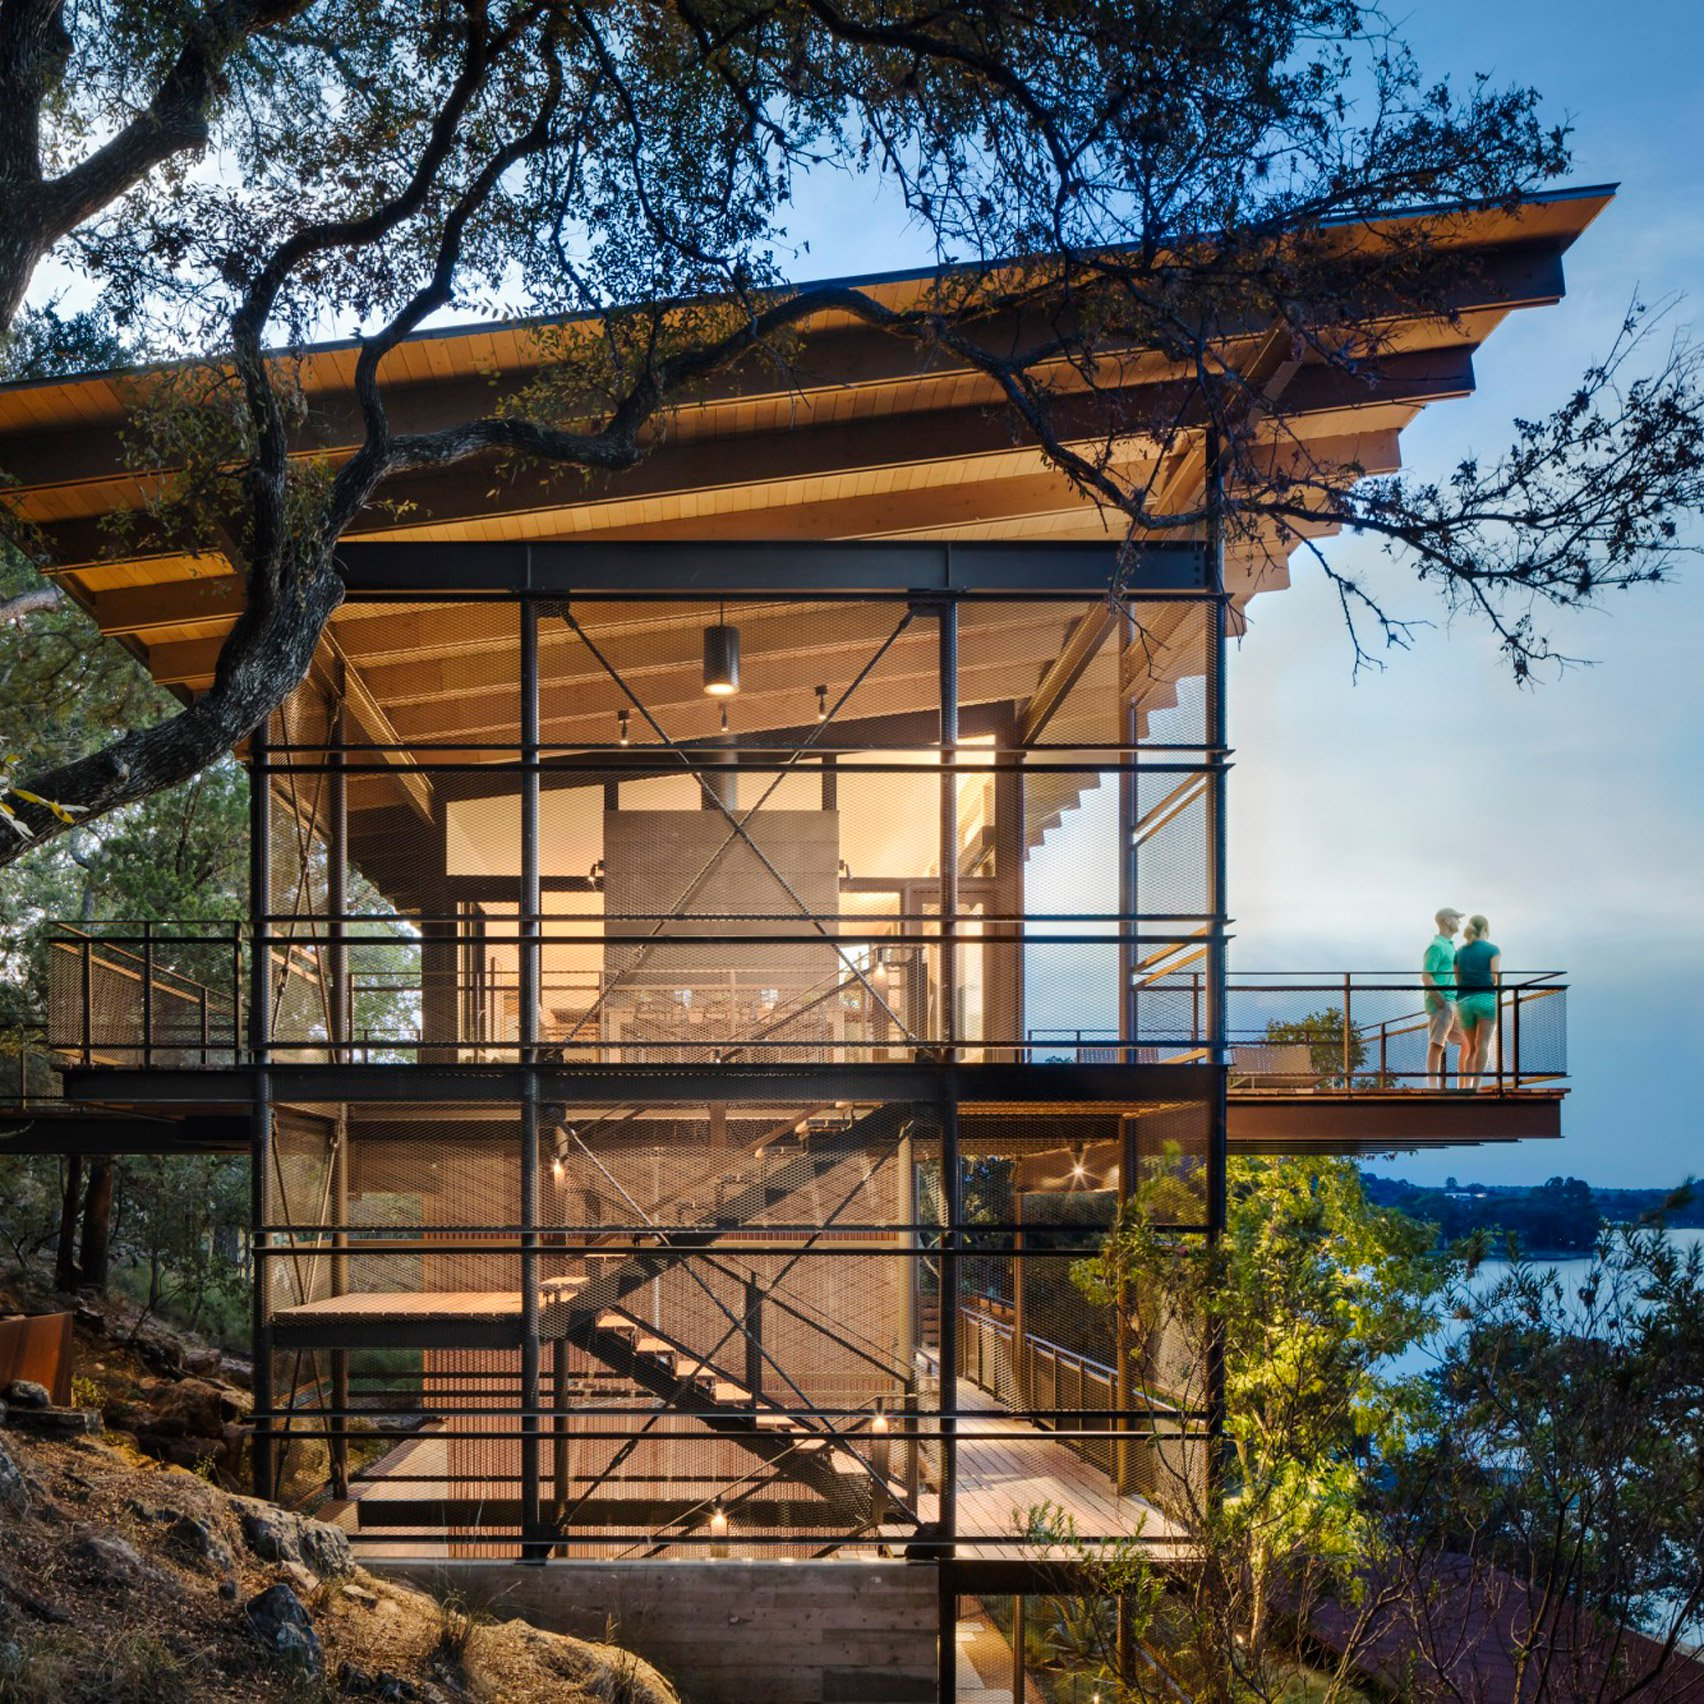 10 US holiday homes that celebrate the American landscape